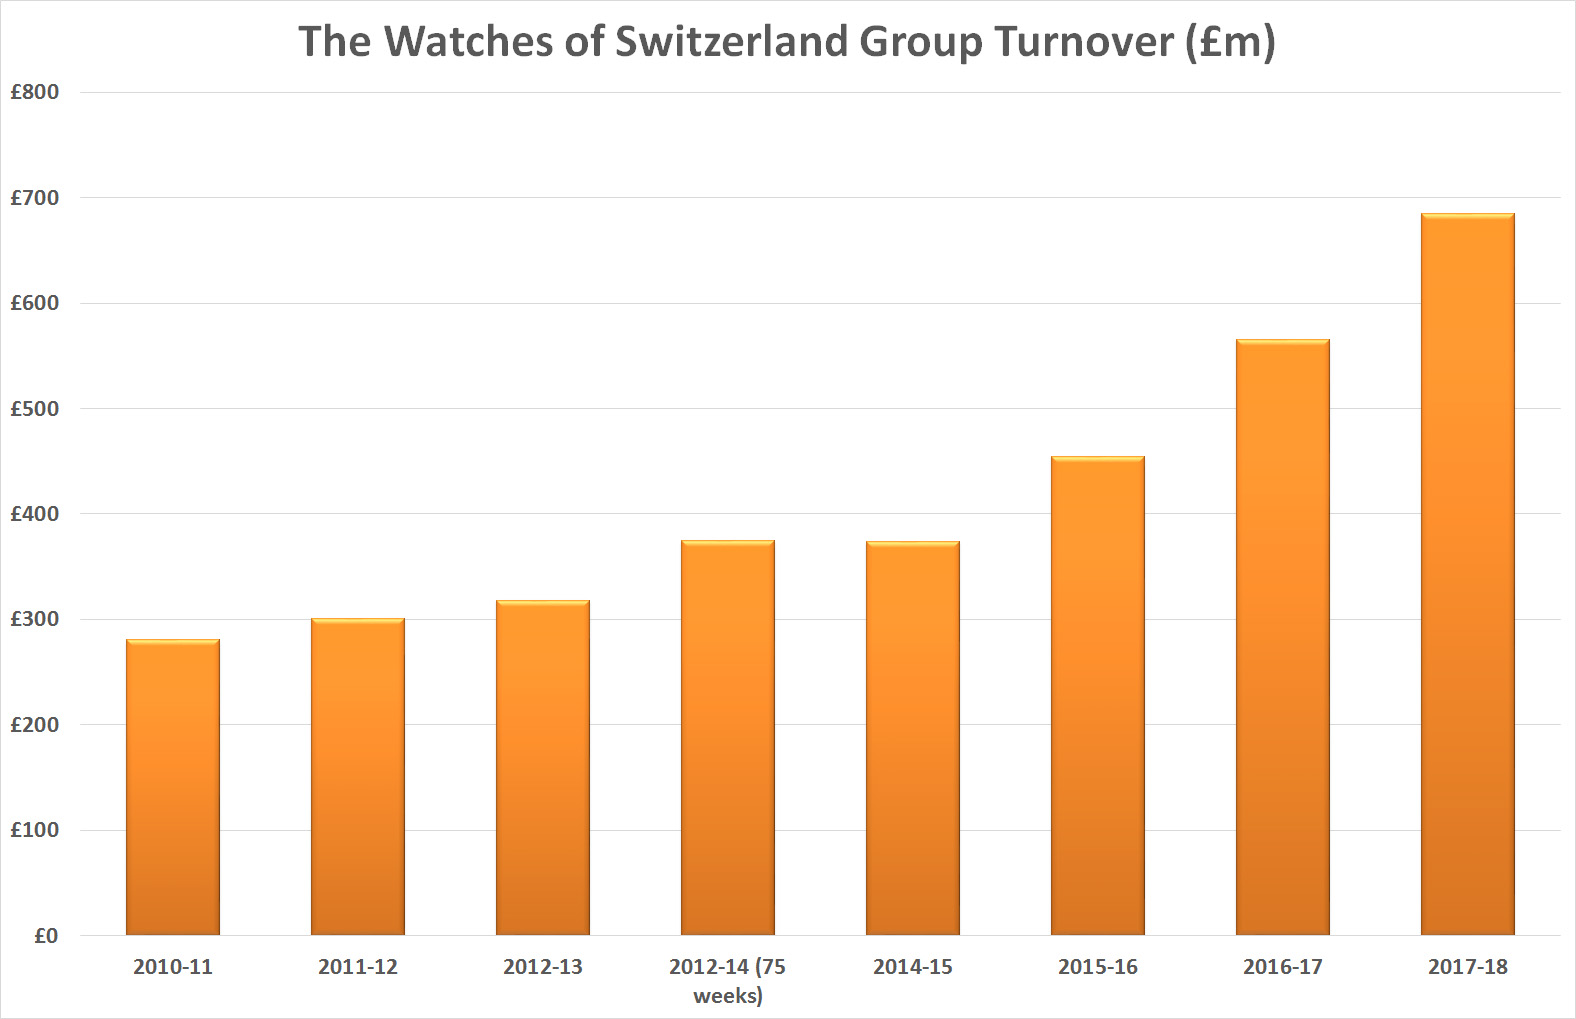 Watches of Switzerland Group turnover